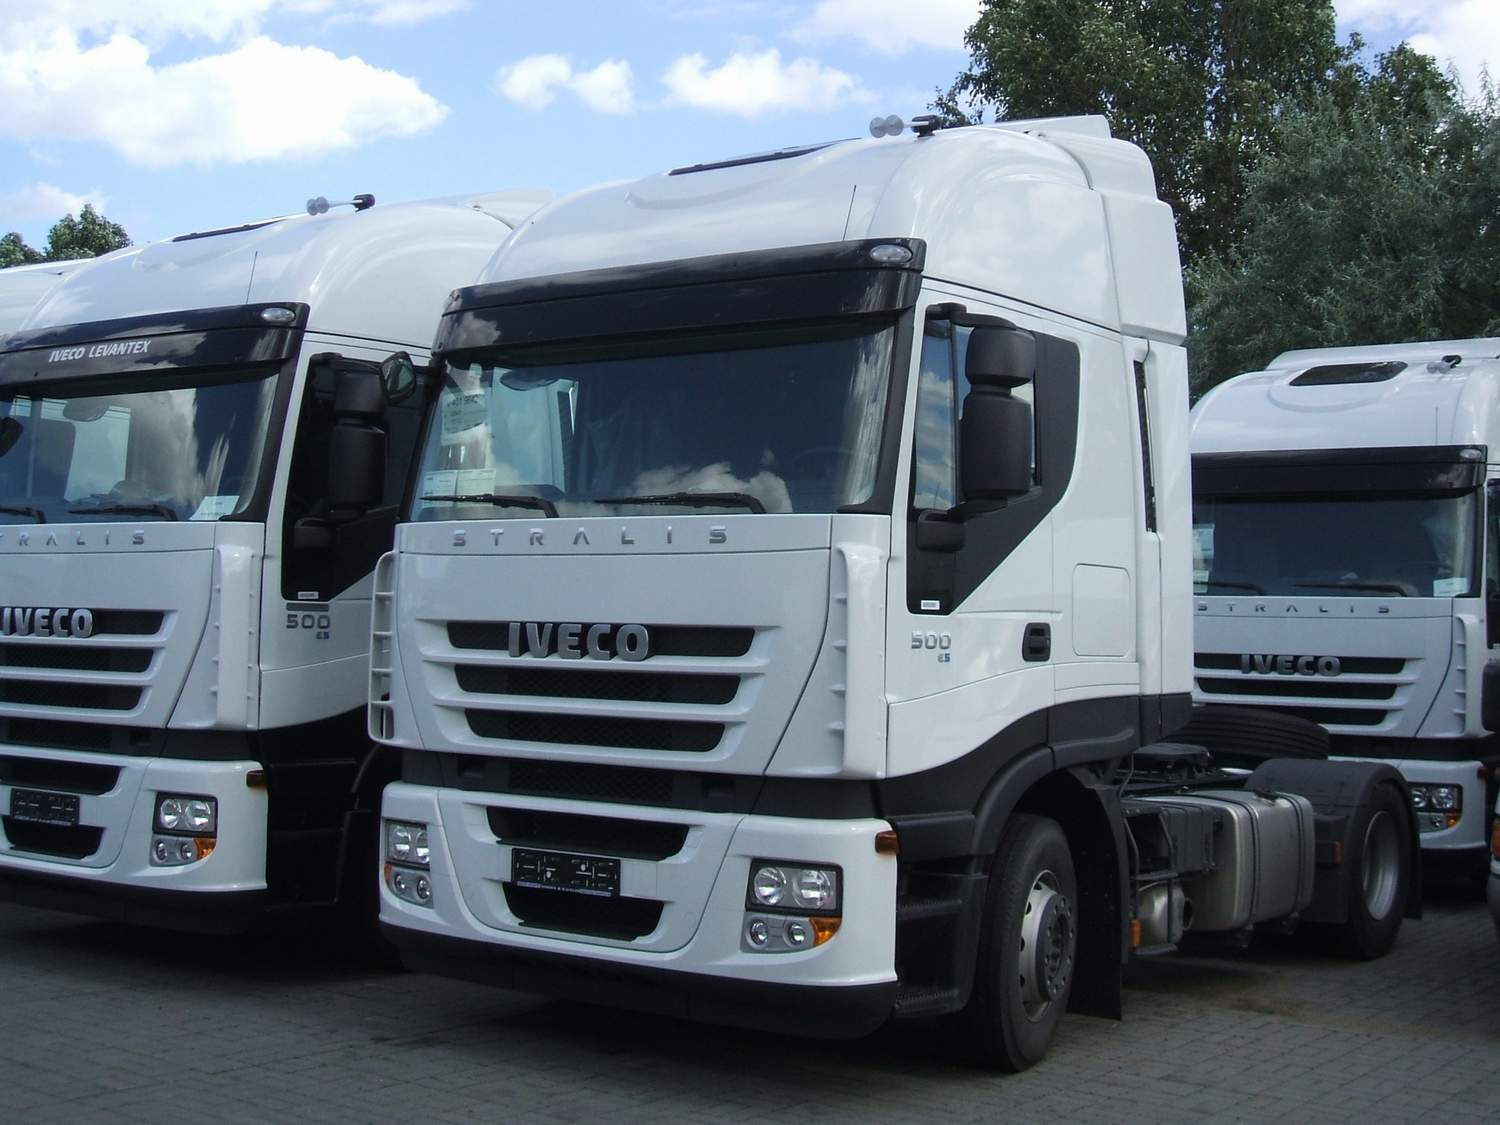 Iveco Stralispicture # 15 , reviews, news, specs, buy car